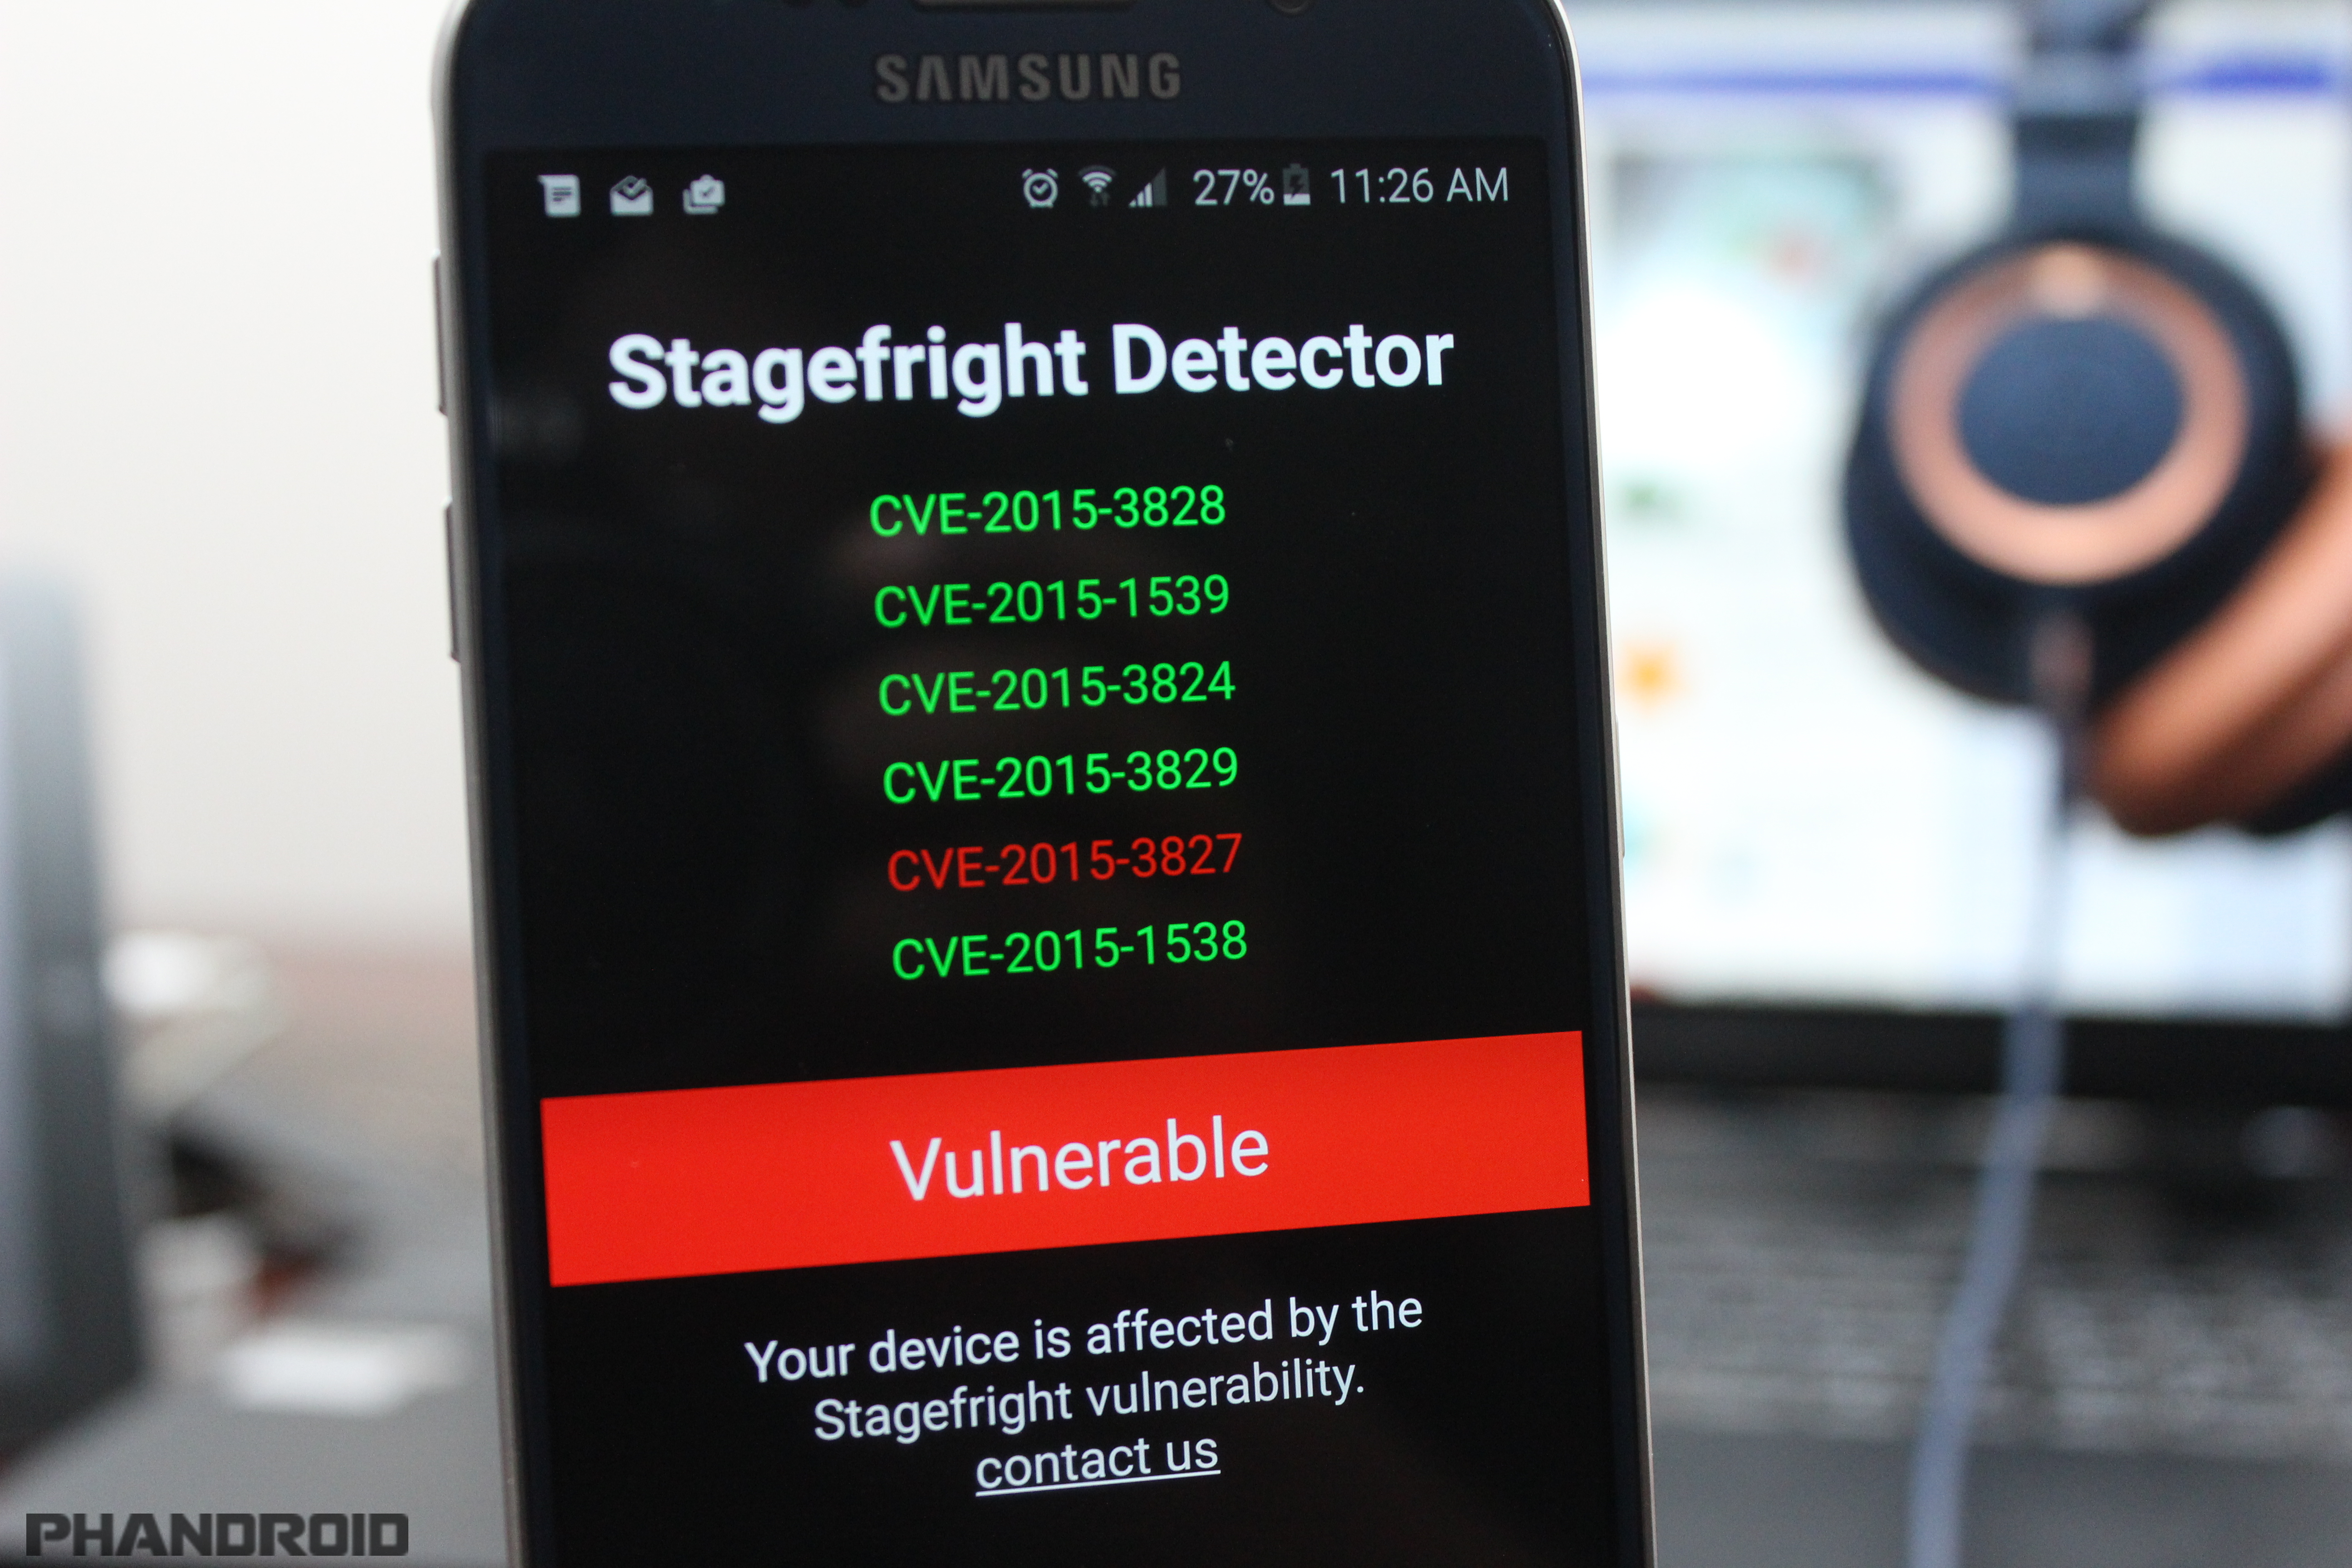 PSA: Your Android phone may still have Stagefright vulnerability